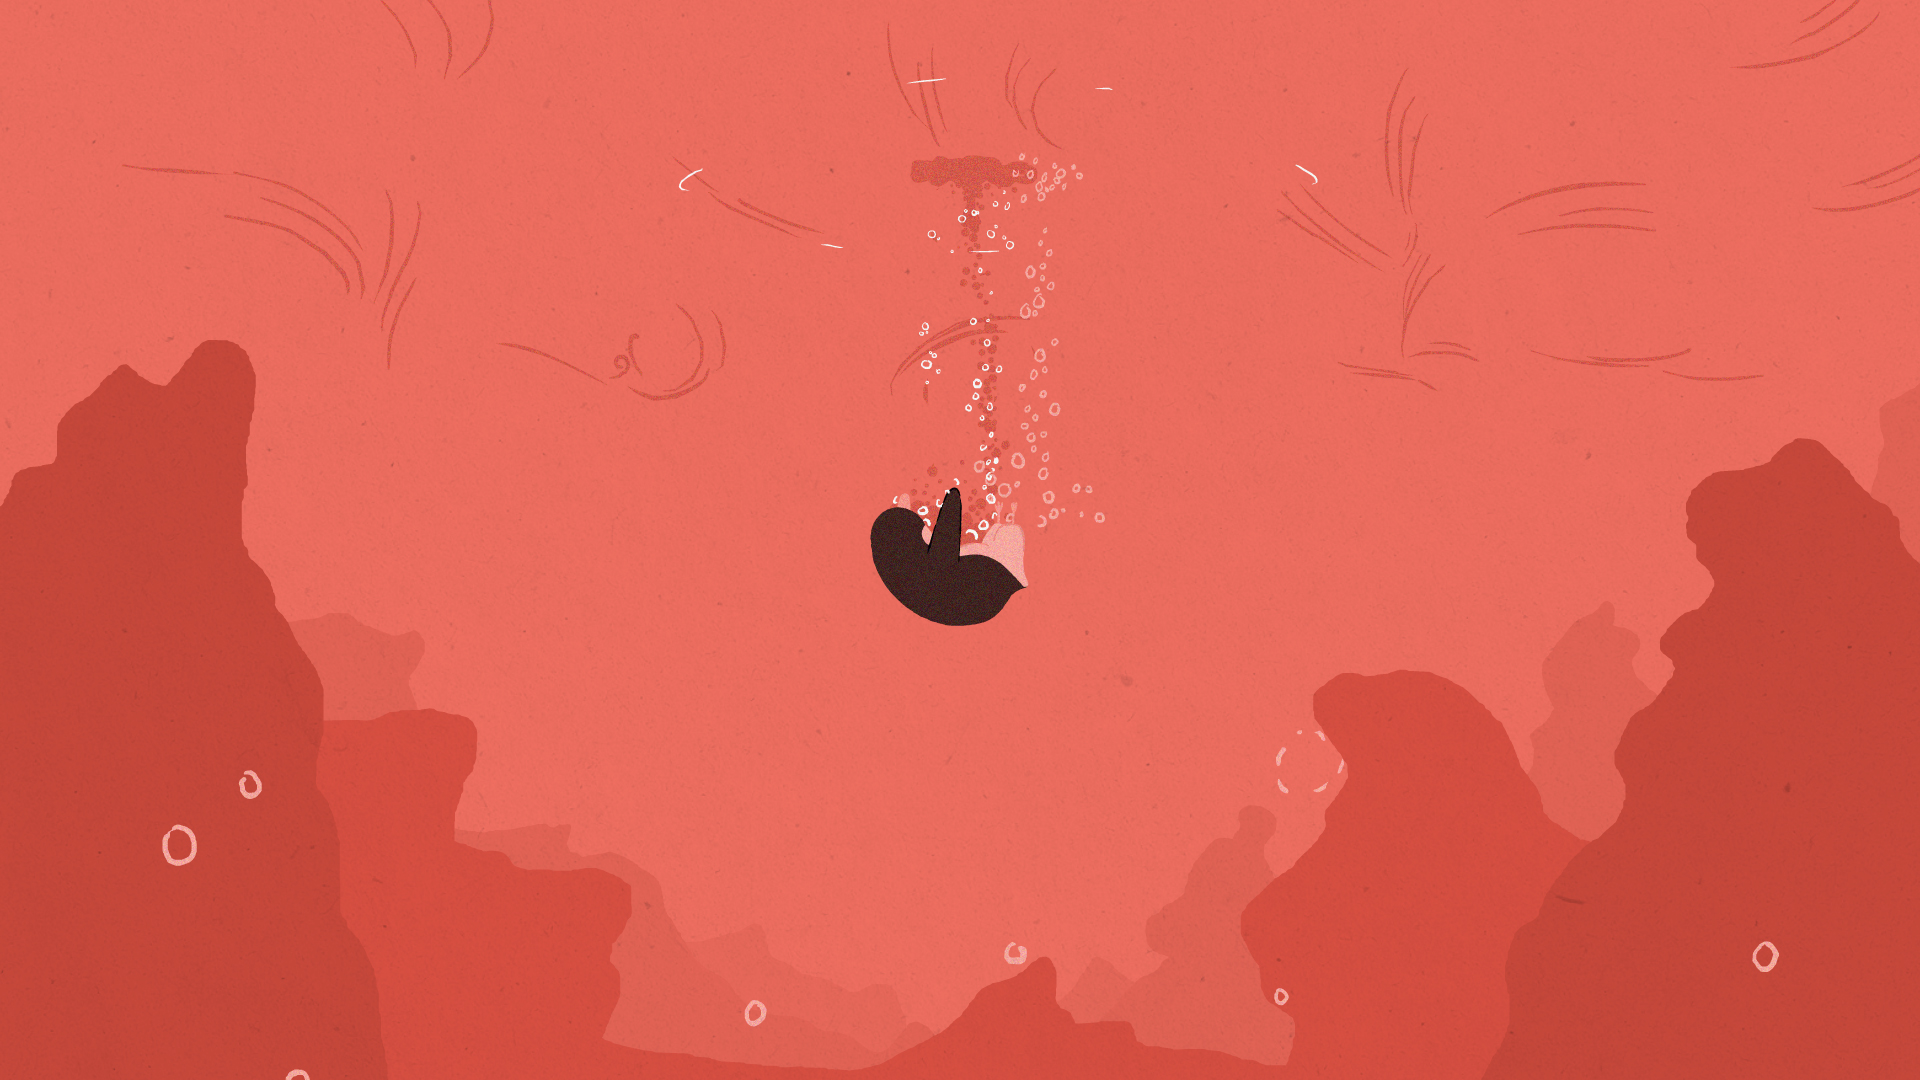 An animated penguin is sinking in a vast and empty ocean. There are bubbles forming above them.